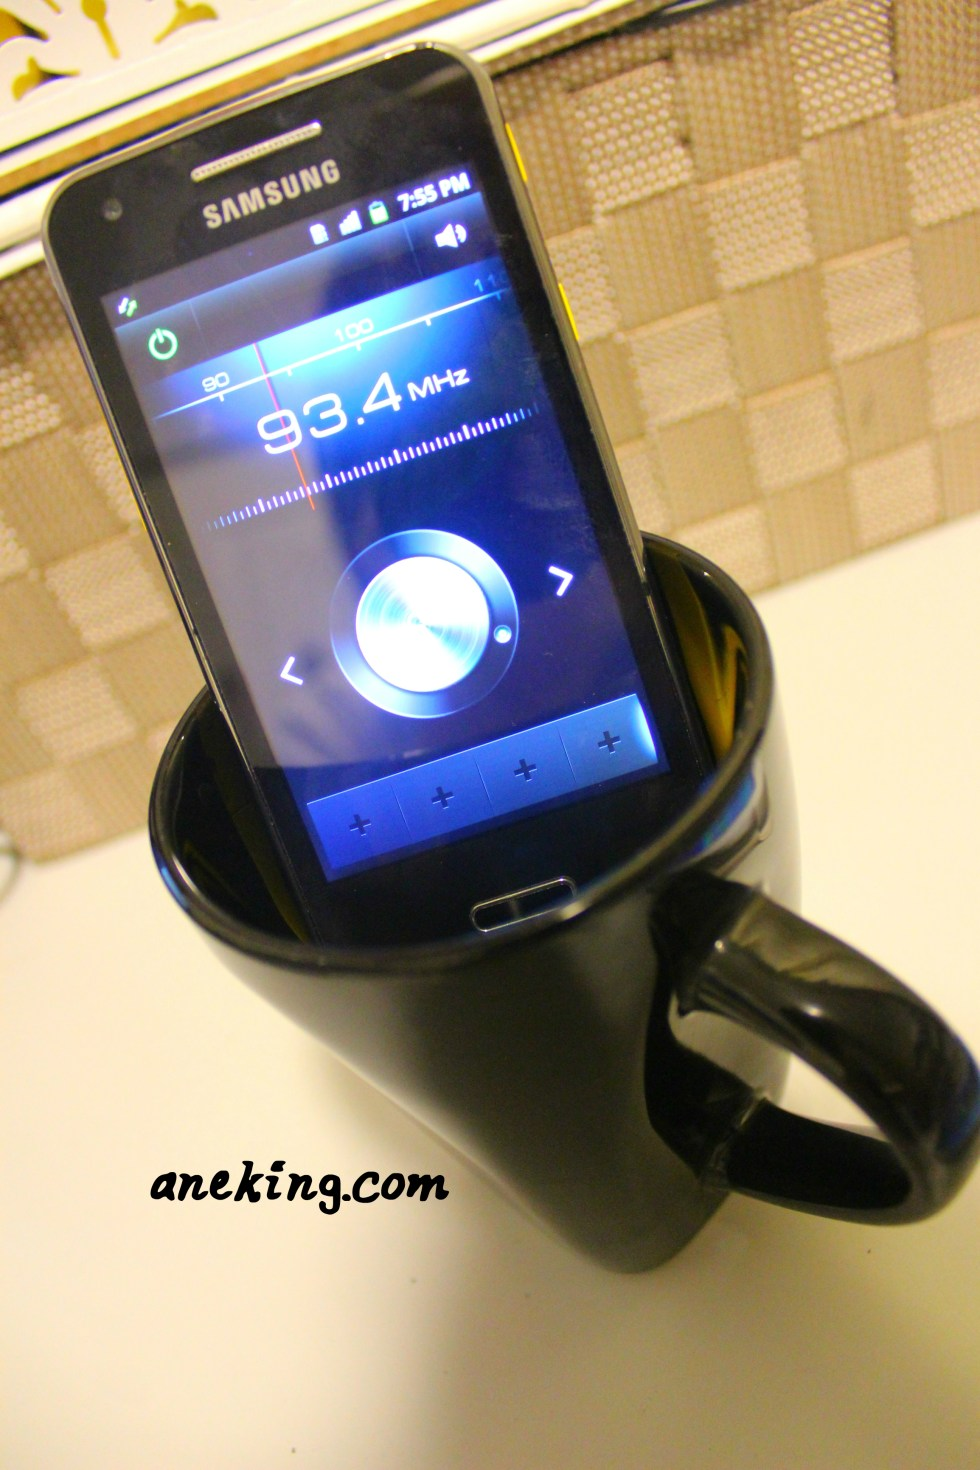 7. When you're listening to music, put your phone in a glass to amplify the sound.